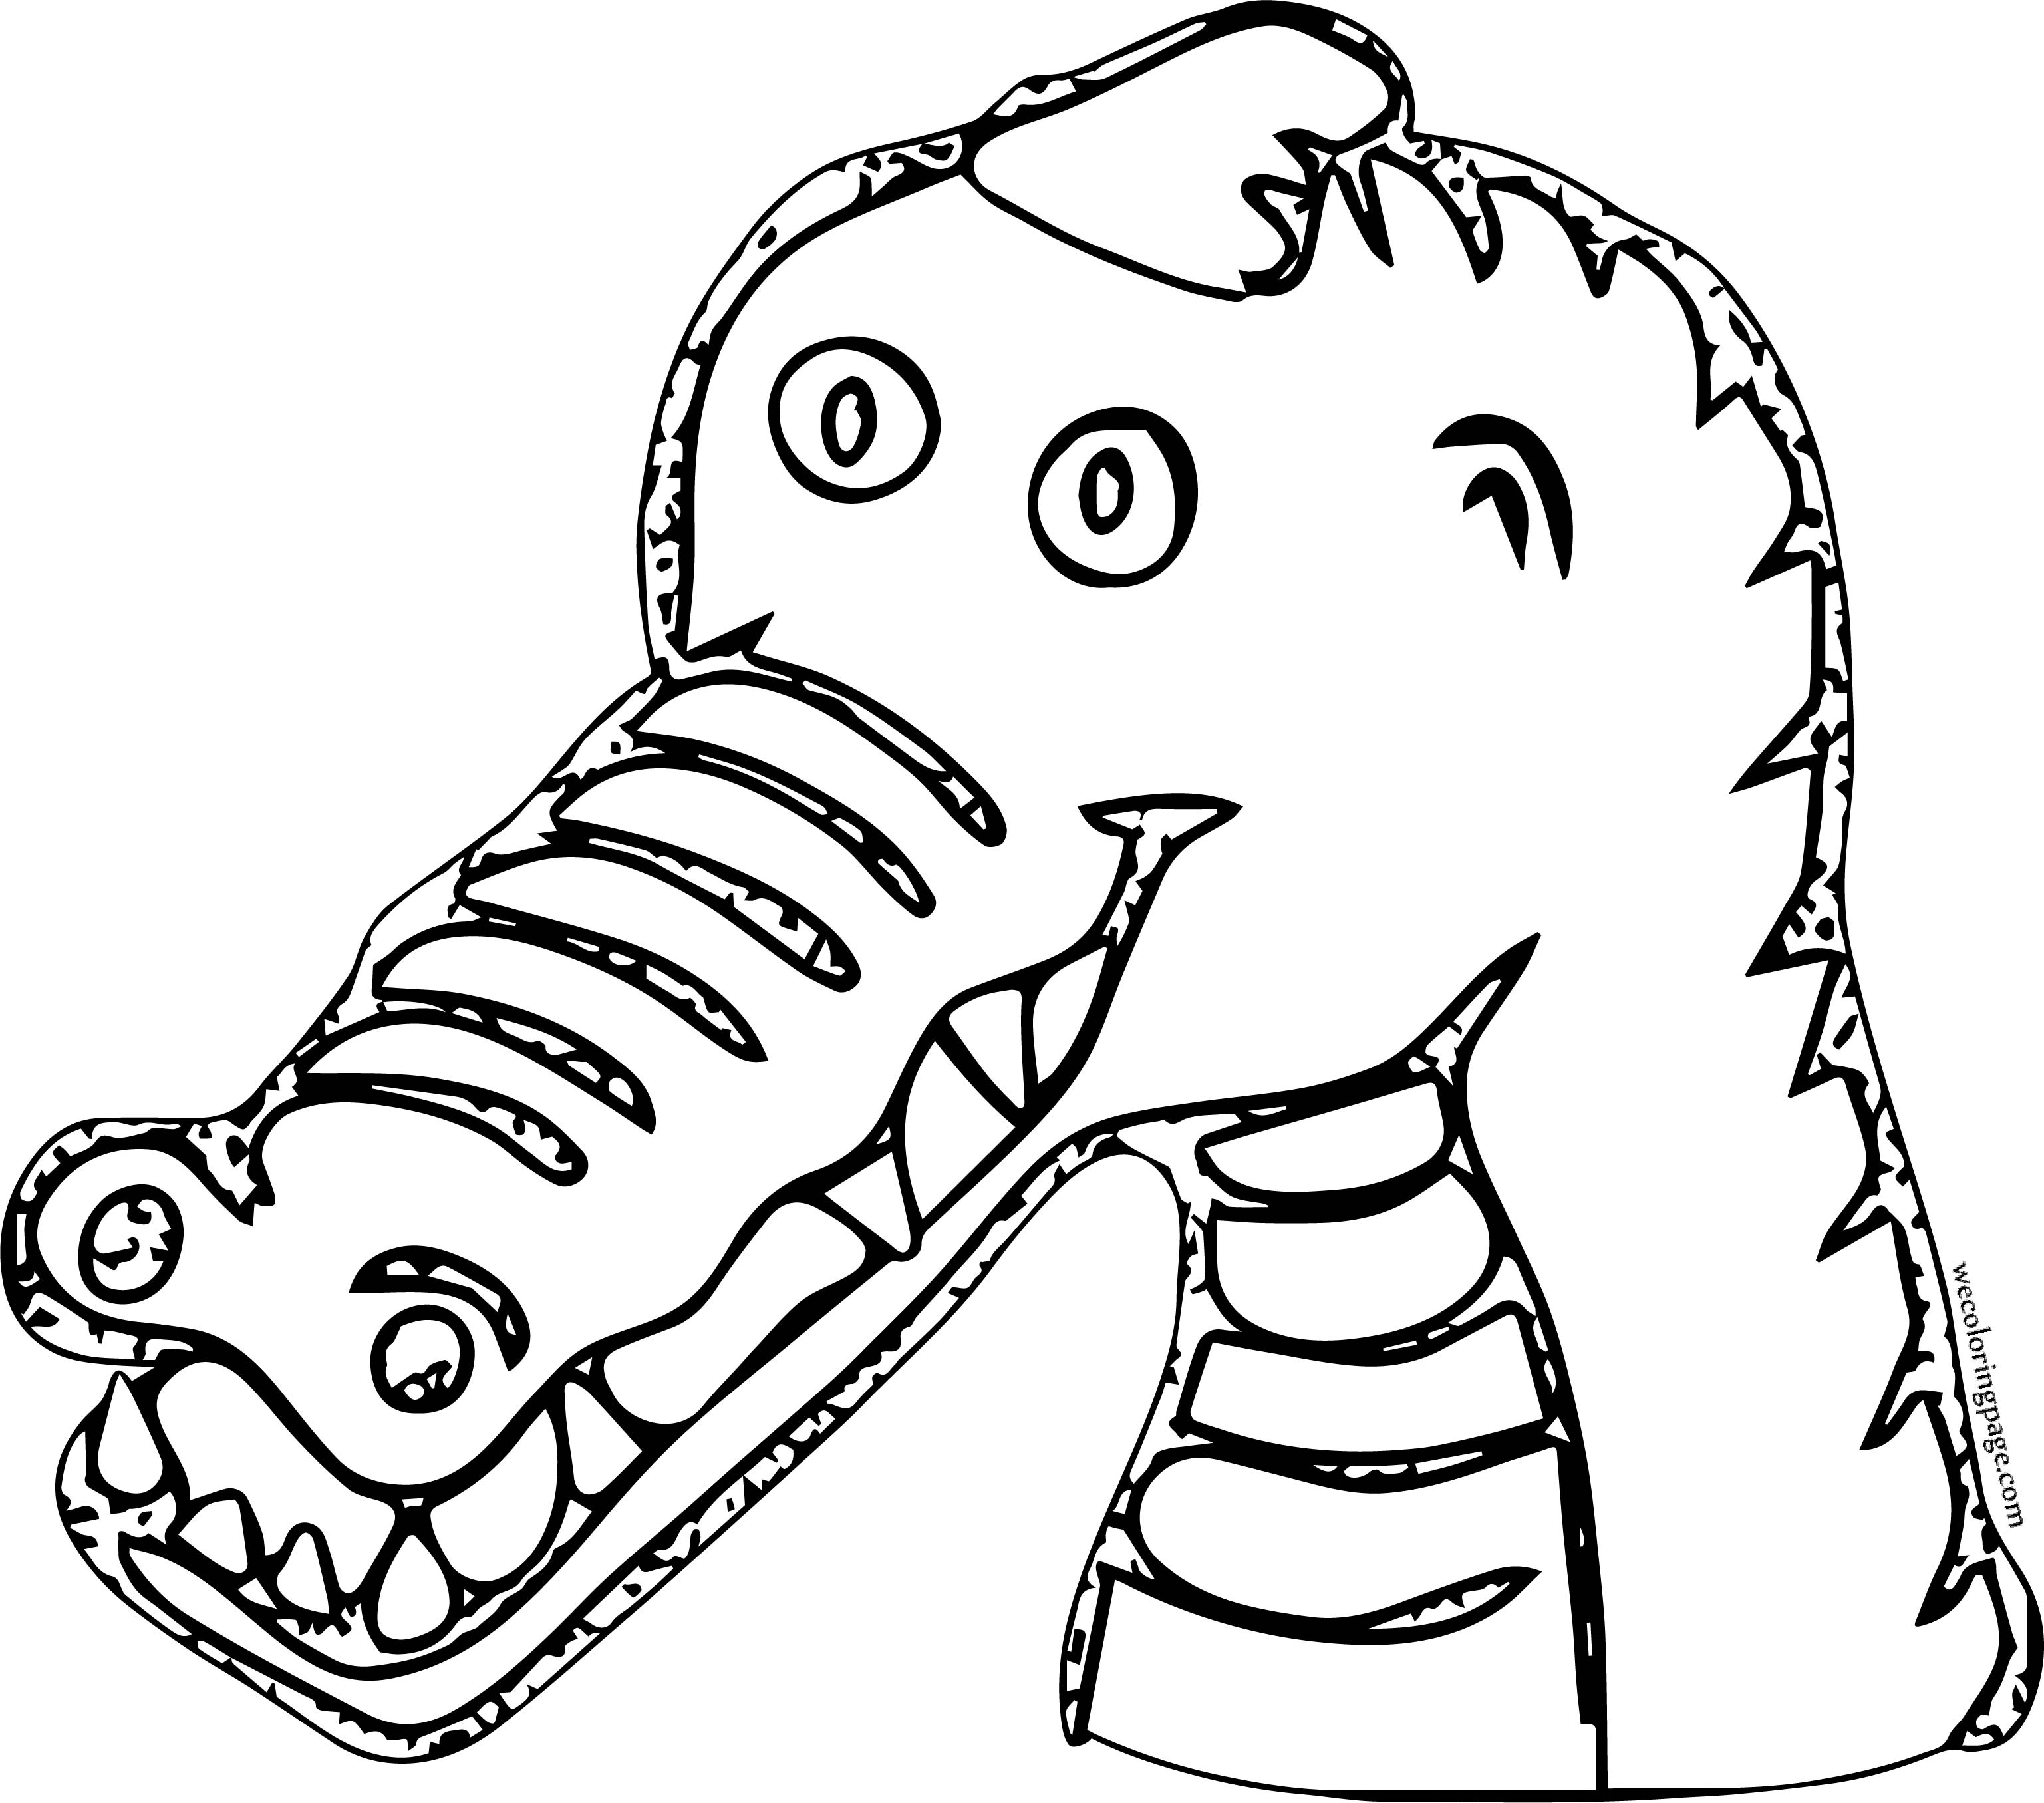 Party Crocodile Alligator Coloring Page